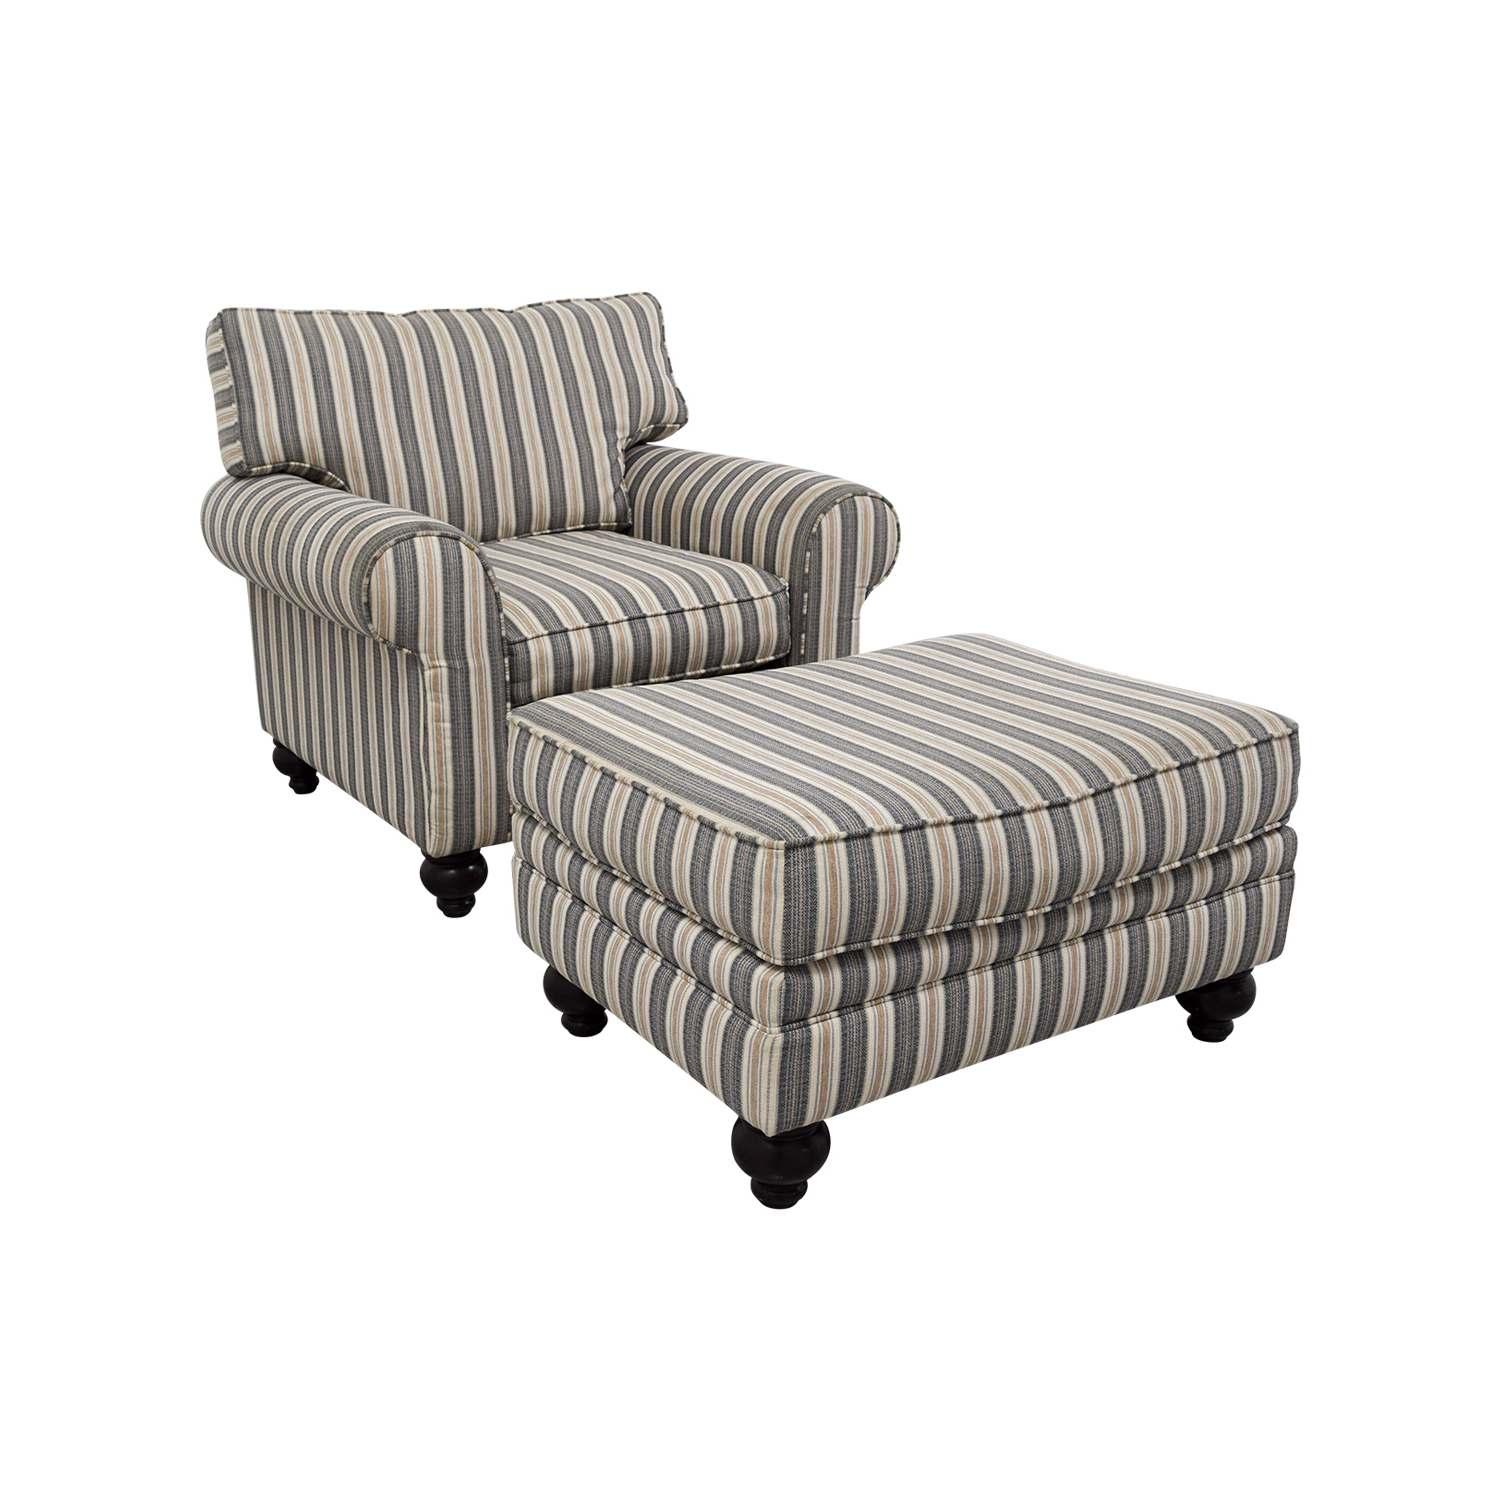 [%90% Off – Bob's Furniture Bob's Furniture Sofa Chair With Ottoman With Most Current Sofa Chair With Ottoman|sofa Chair With Ottoman Throughout Well Known 90% Off – Bob's Furniture Bob's Furniture Sofa Chair With Ottoman|latest Sofa Chair With Ottoman Regarding 90% Off – Bob's Furniture Bob's Furniture Sofa Chair With Ottoman|2018 90% Off – Bob's Furniture Bob's Furniture Sofa Chair With Ottoman With Regard To Sofa Chair With Ottoman%] (View 5 of 20)